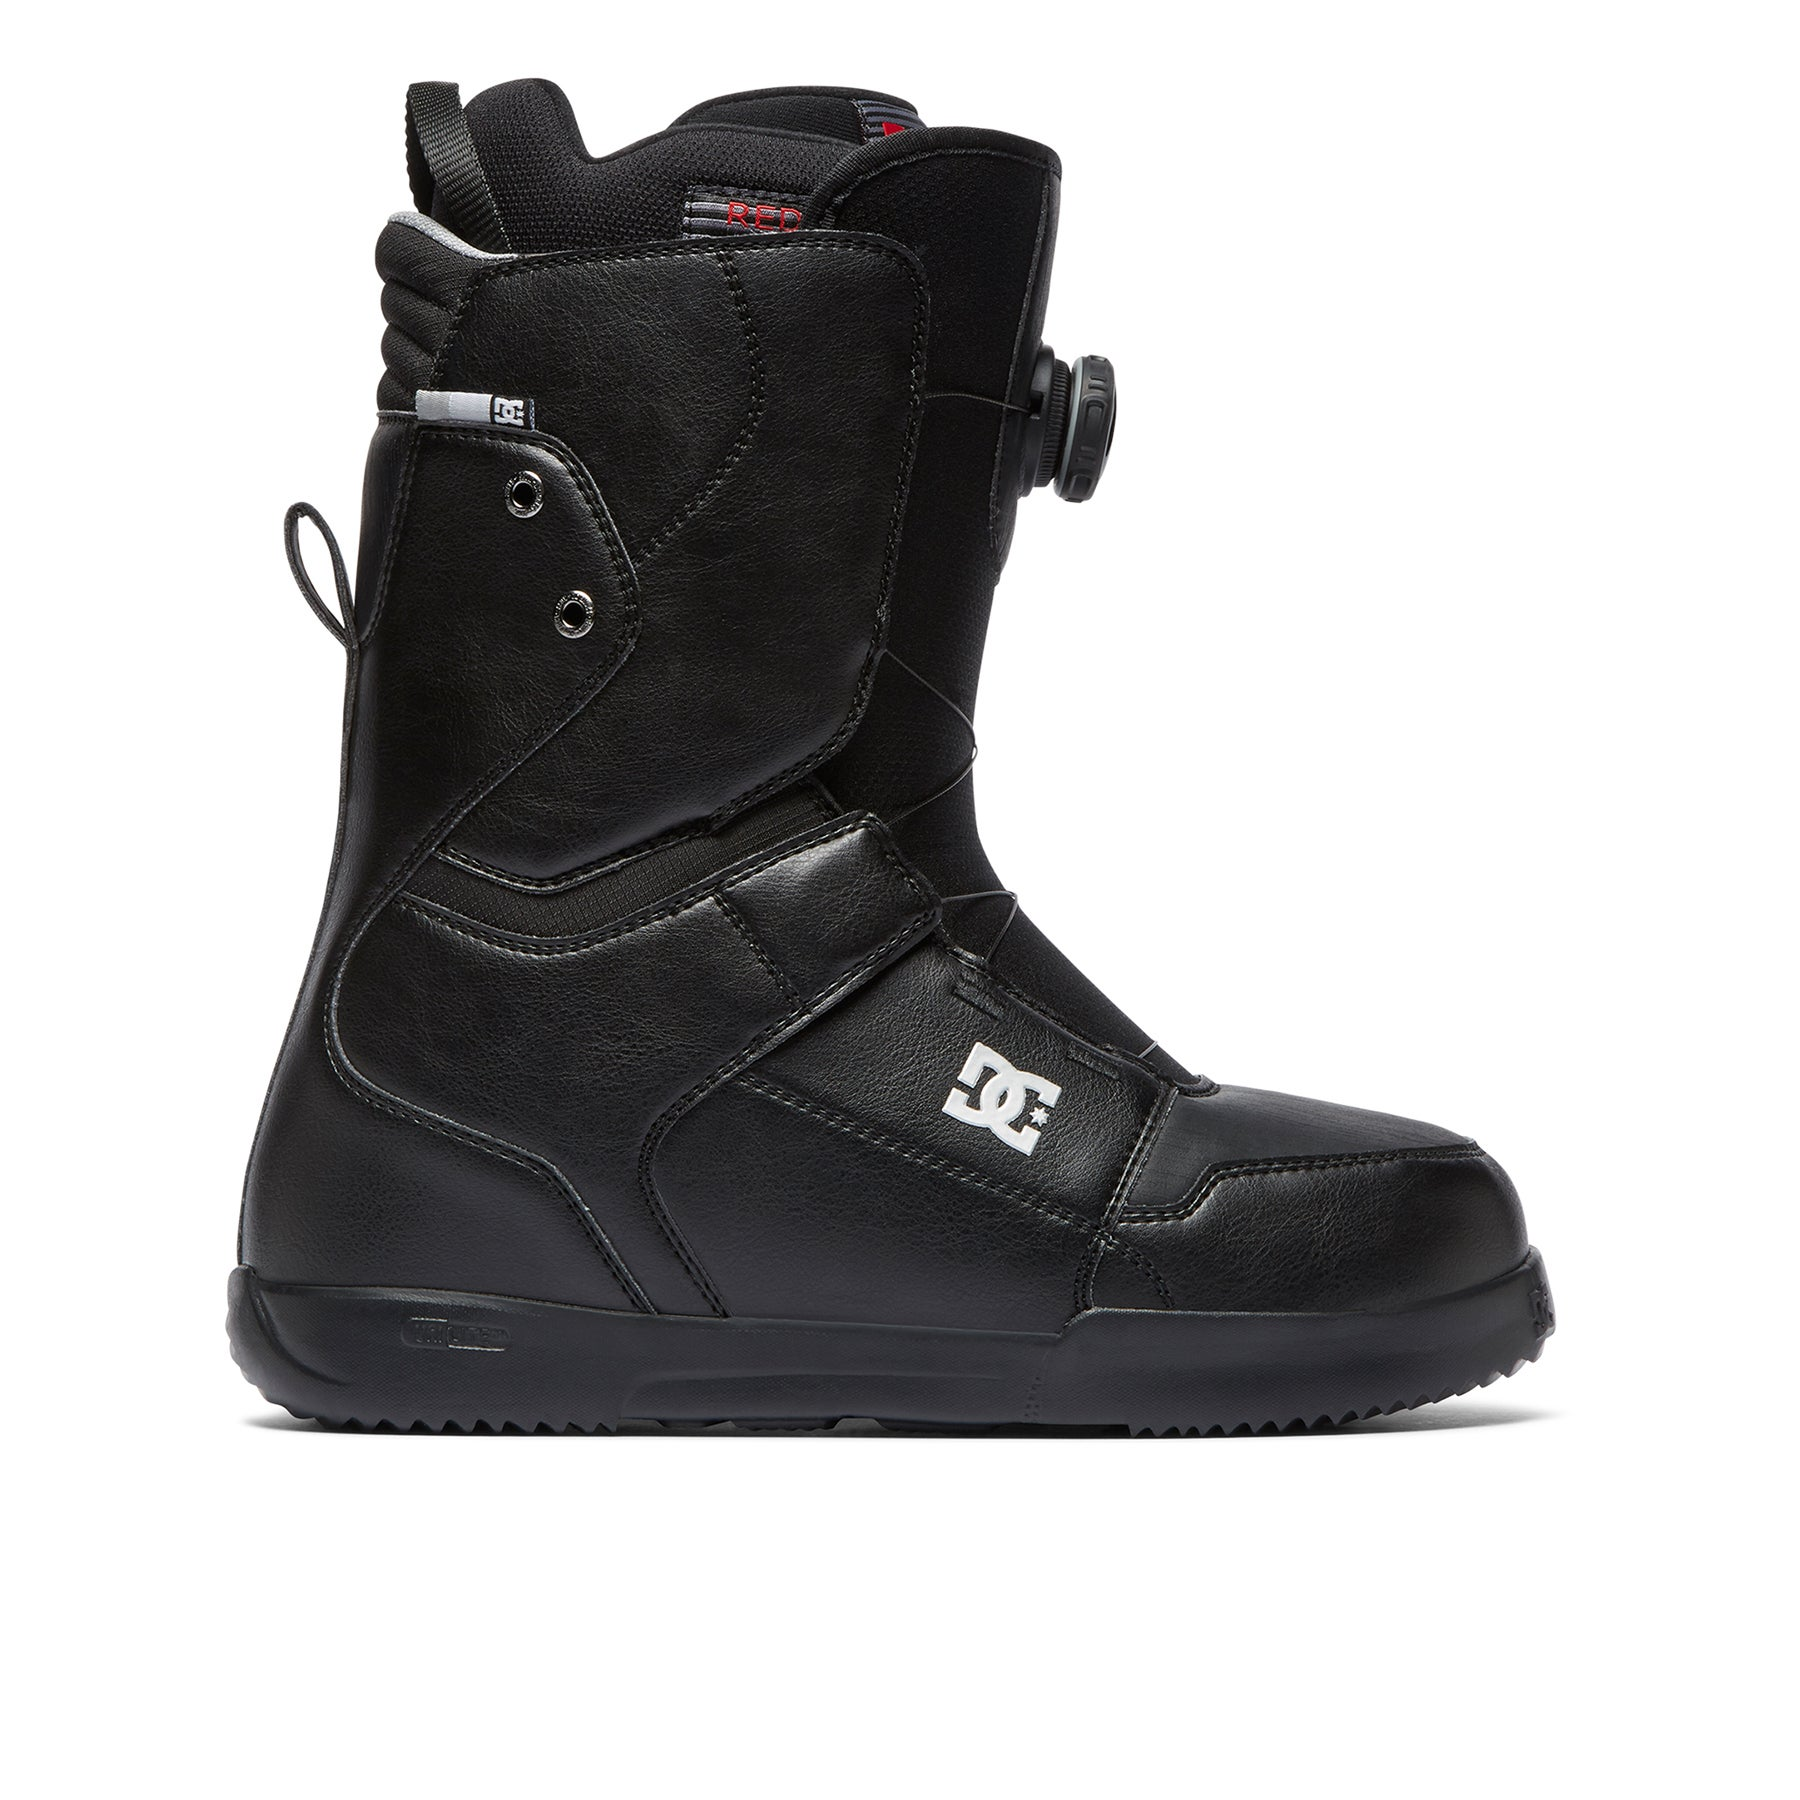 DC Scout BOAX Snowboard Boots - Black